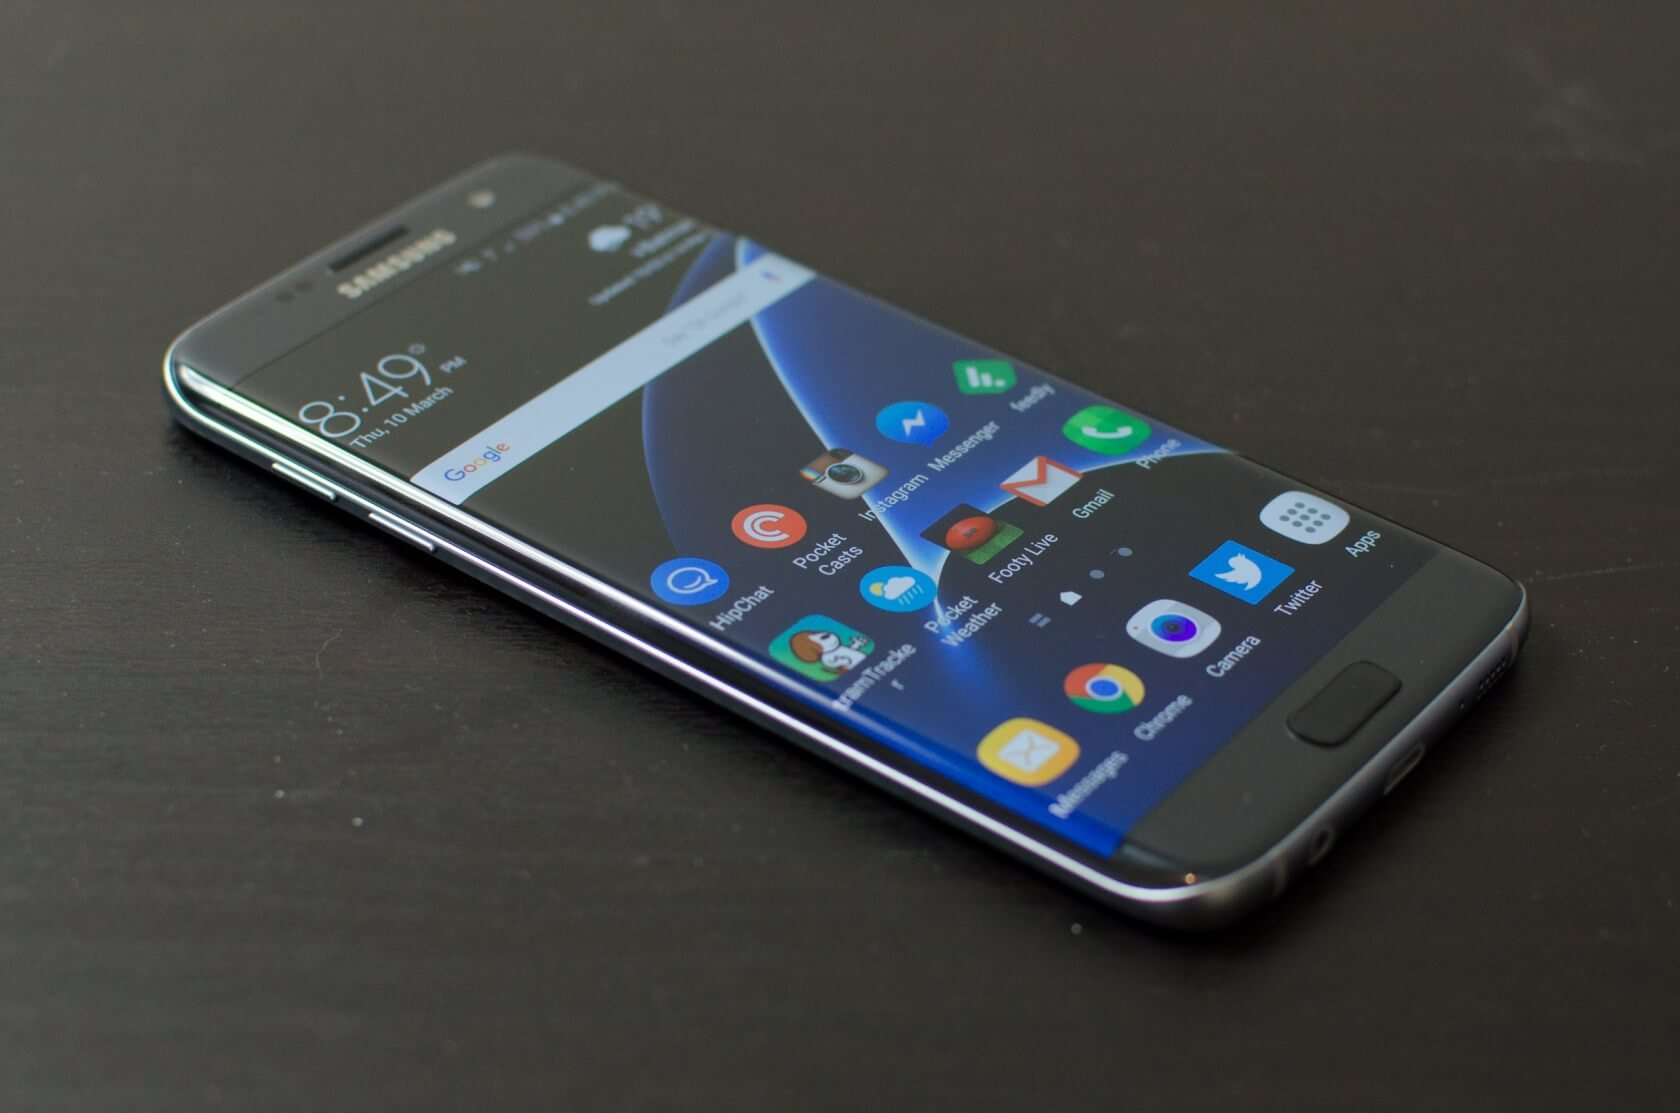 Samsung will reportedly implement a 14-day trial limit on free themes